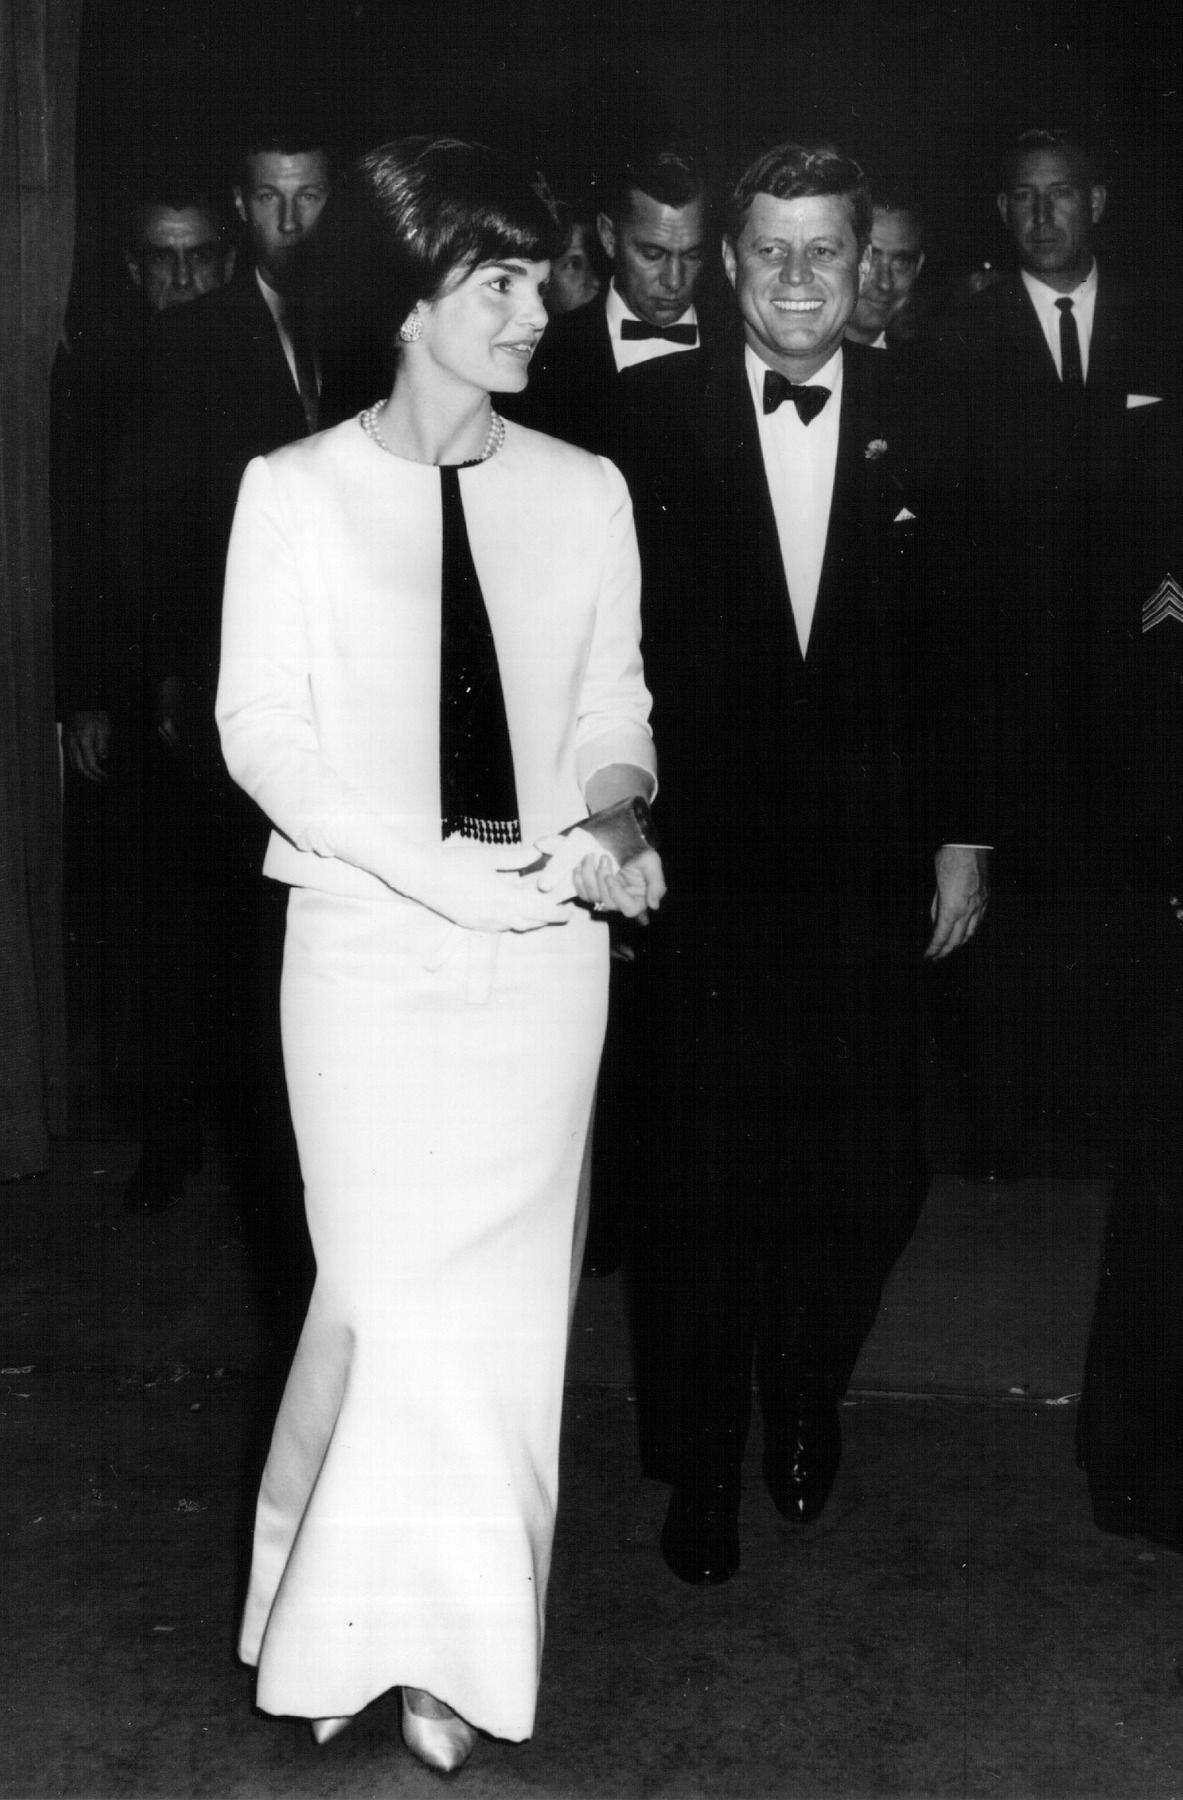 November 29, 1962 Where: With President John F. Kennedy attending a ceremony in Washington, DC.